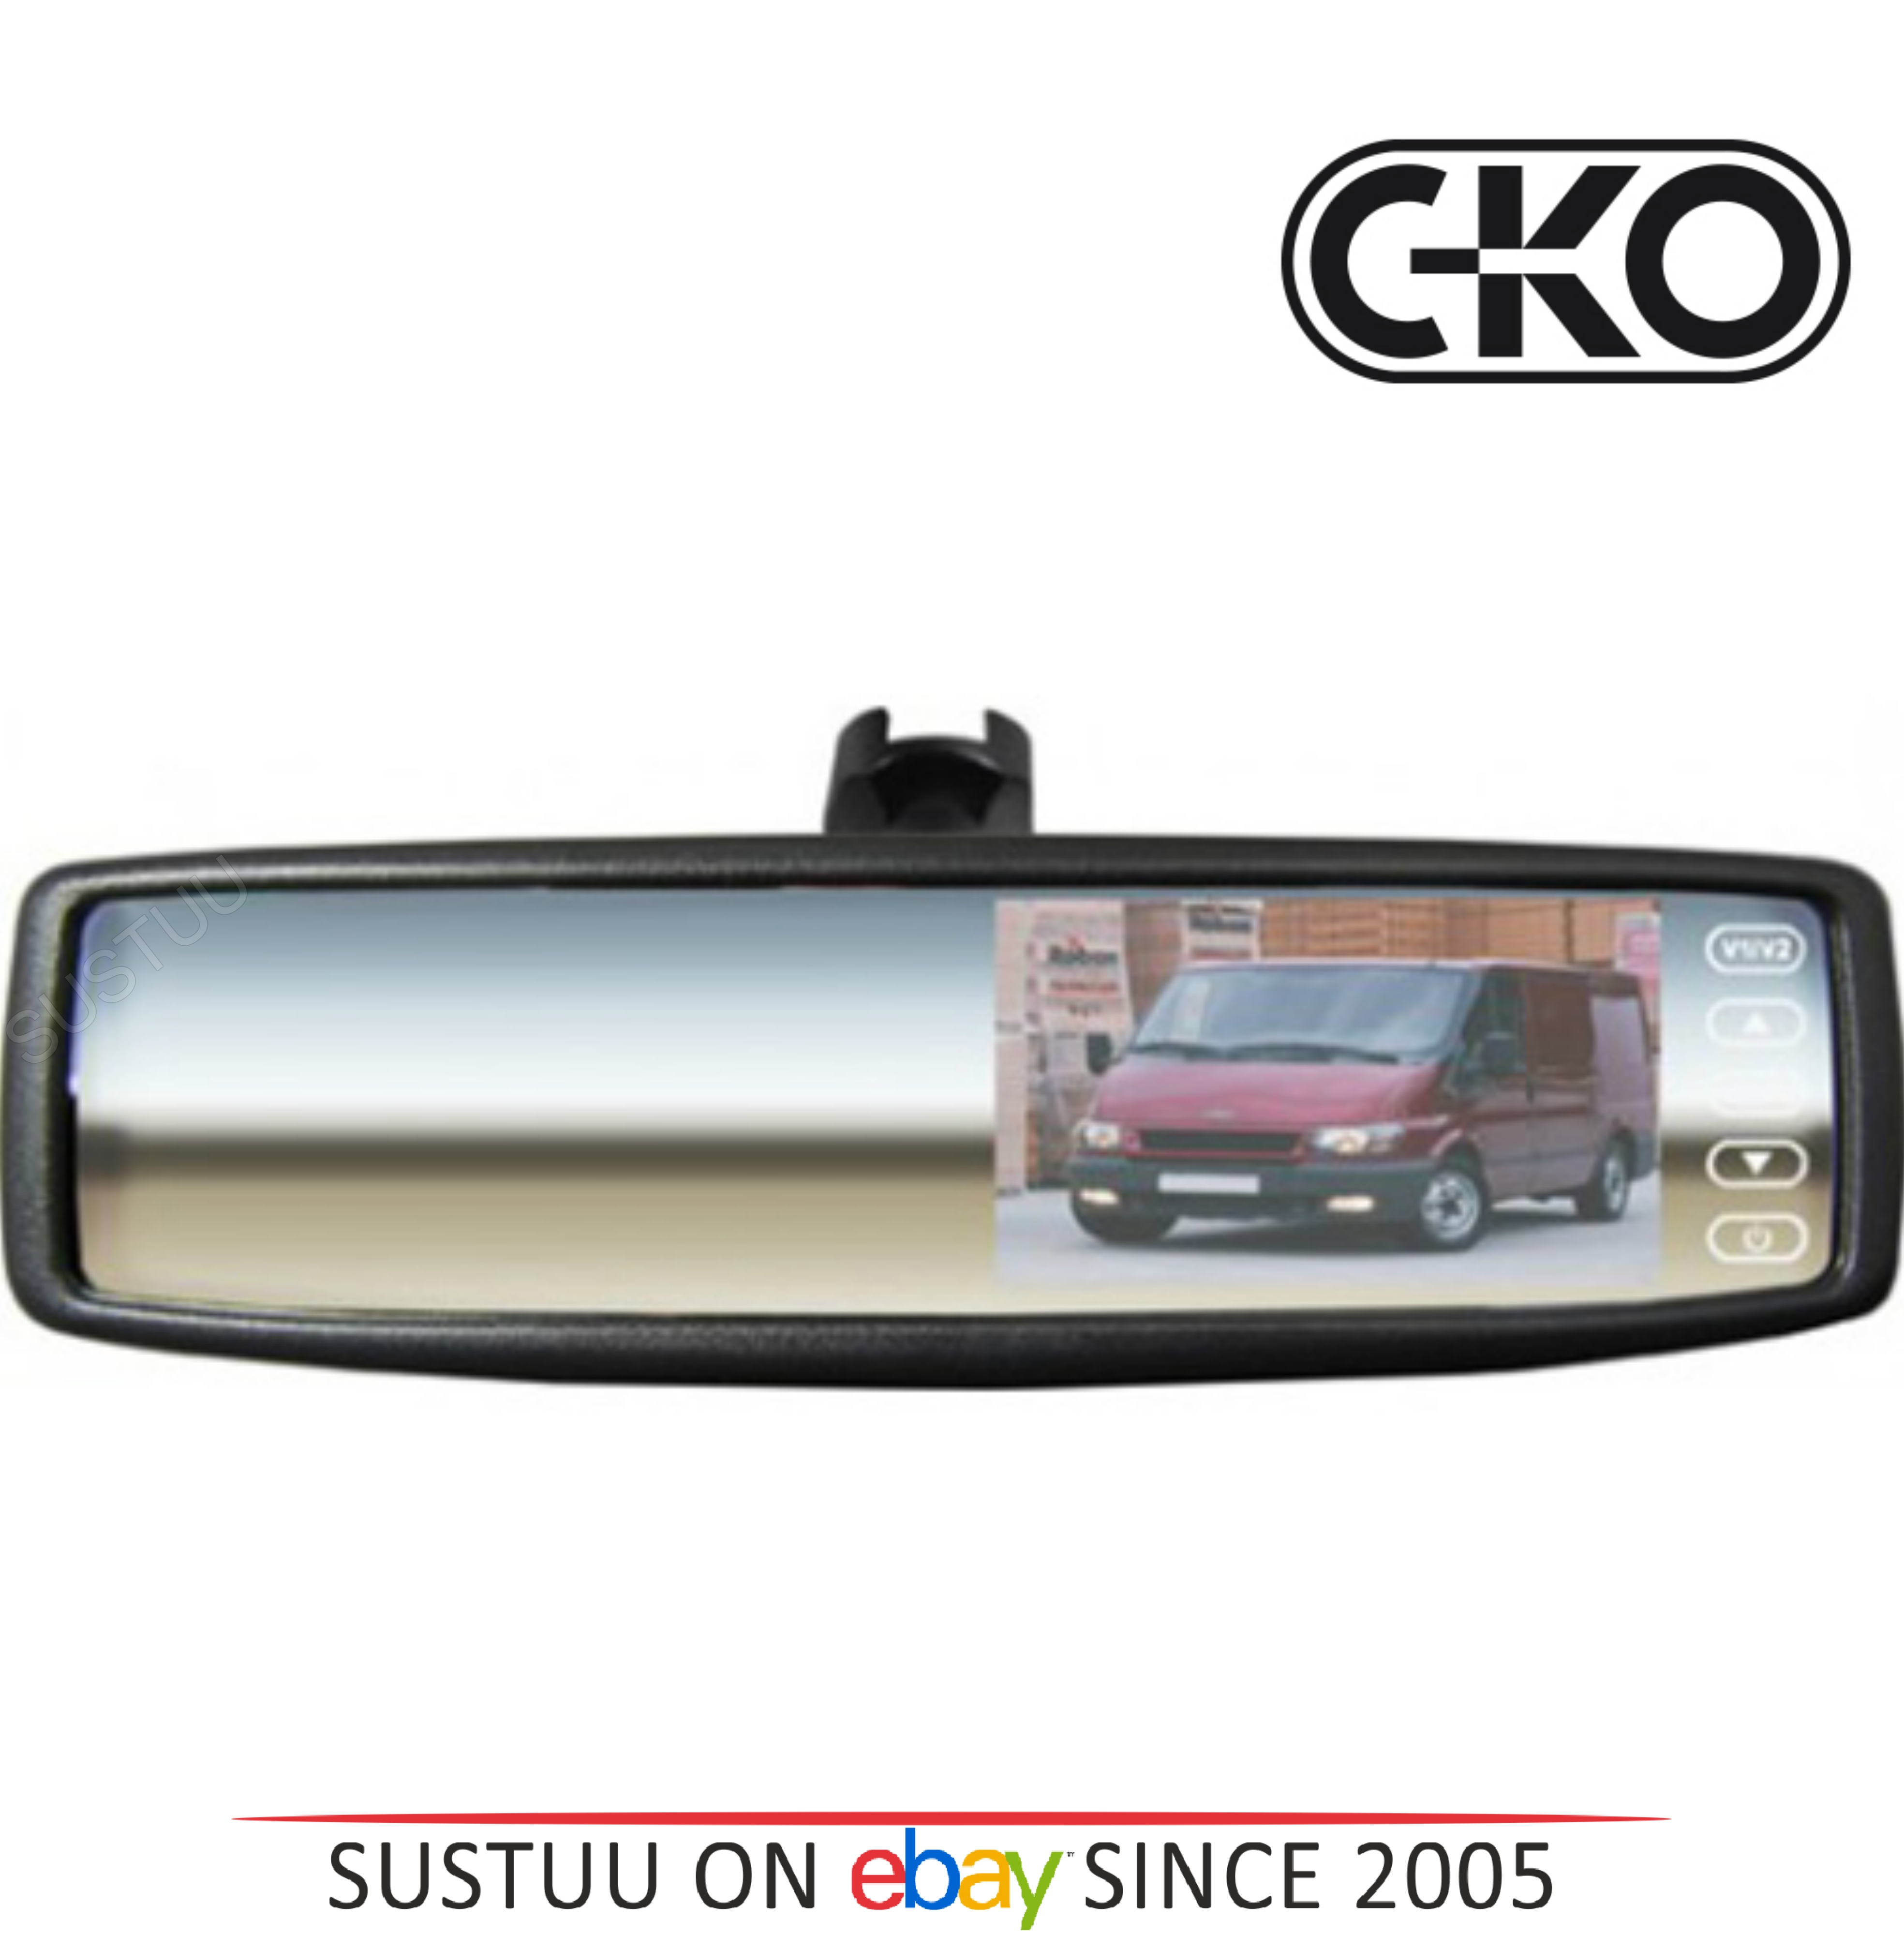 "CKO Mirror Monitor - Mirror + Parking Monitor / Back Rear View Screen 4.3"" - TC0"